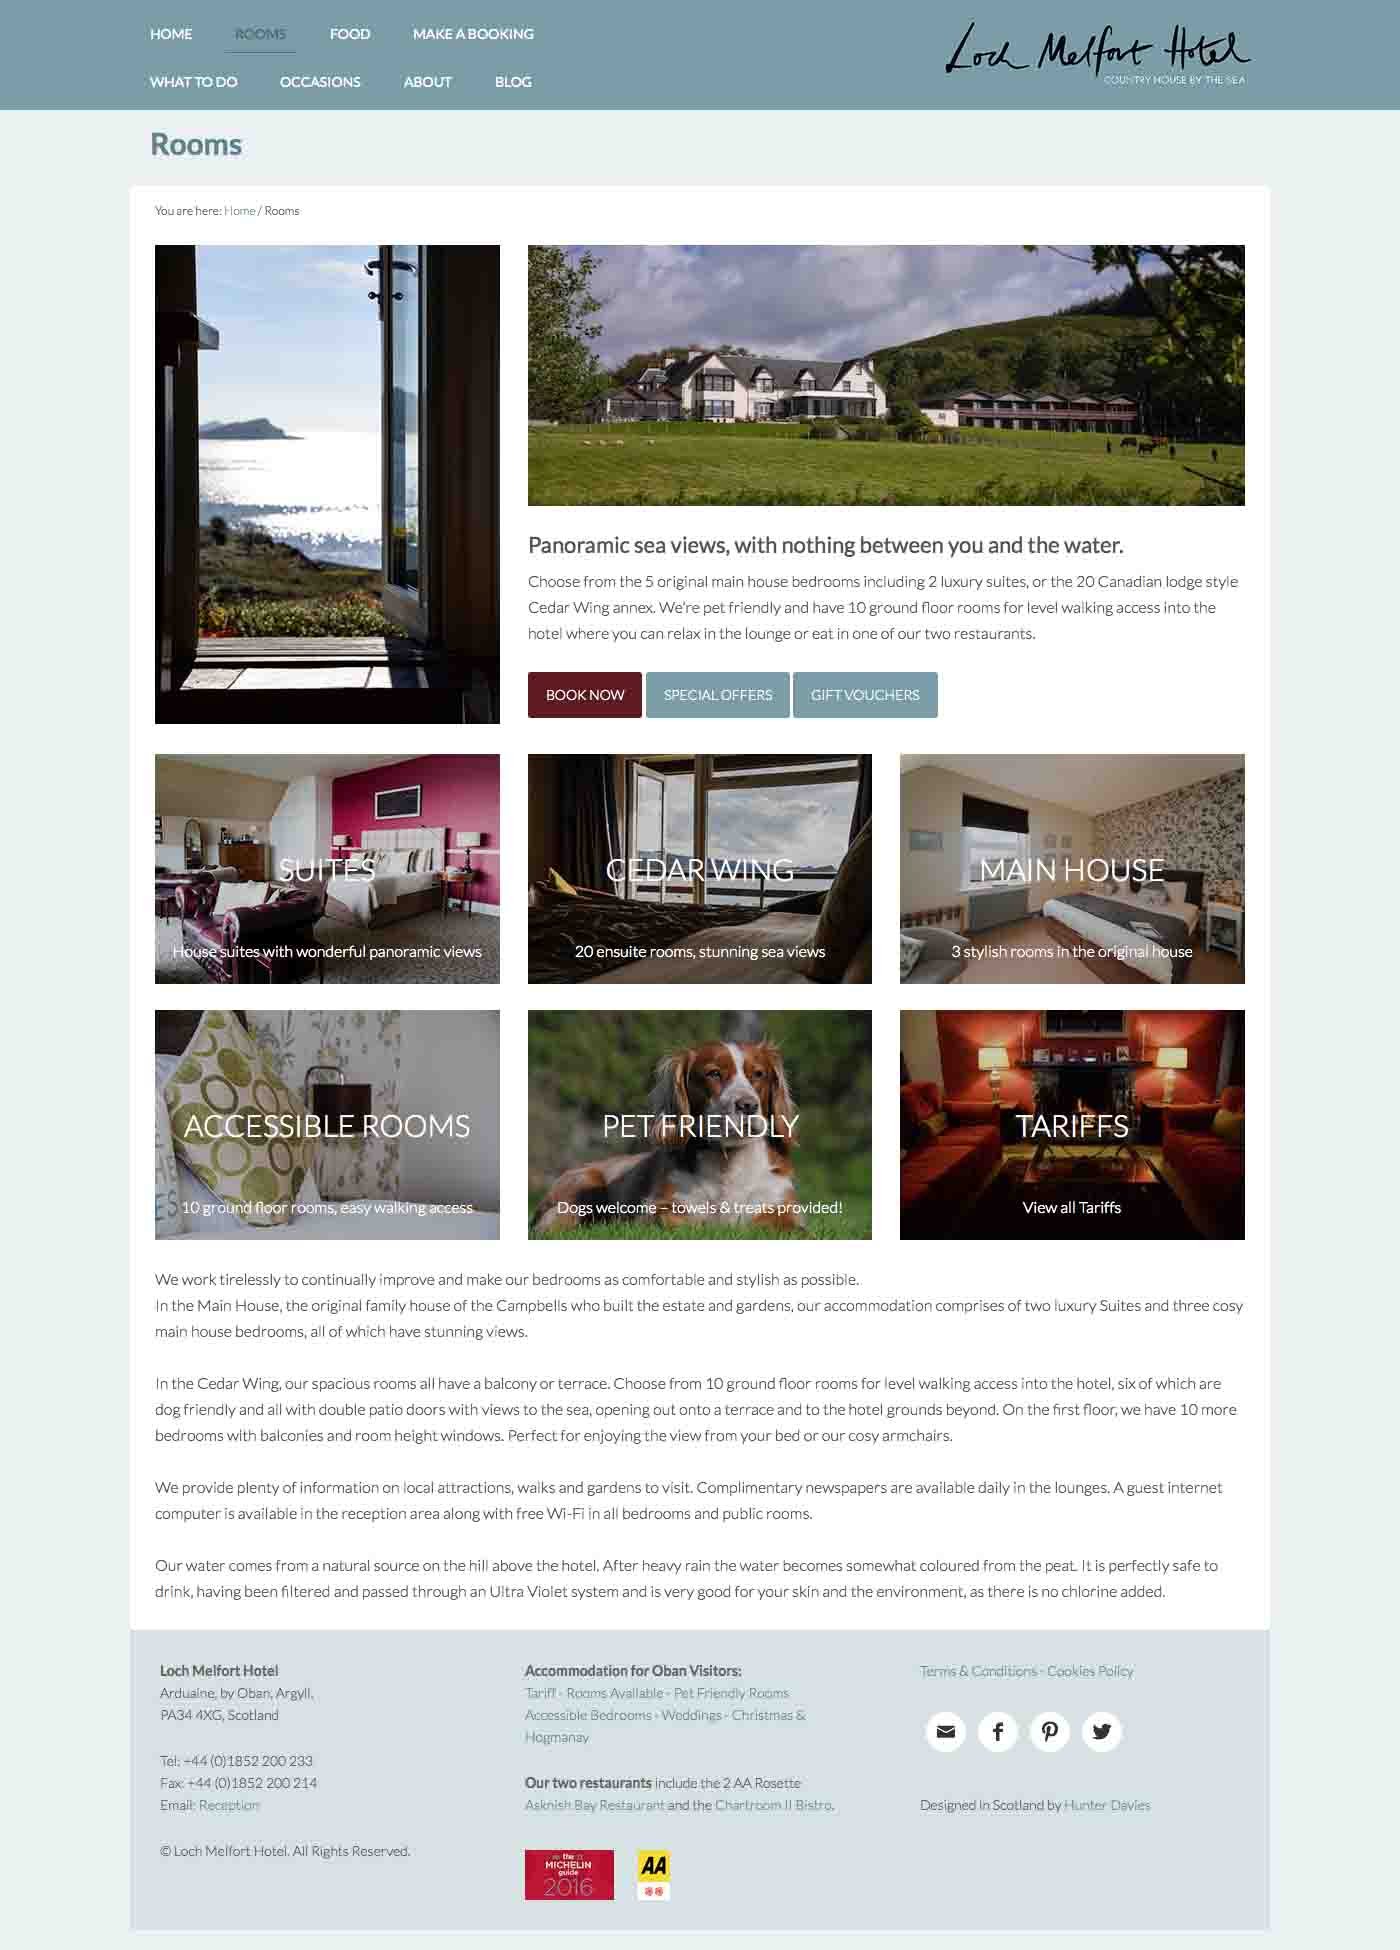 West Coast Media, Loch Melfort Hotel Rooms, Oban